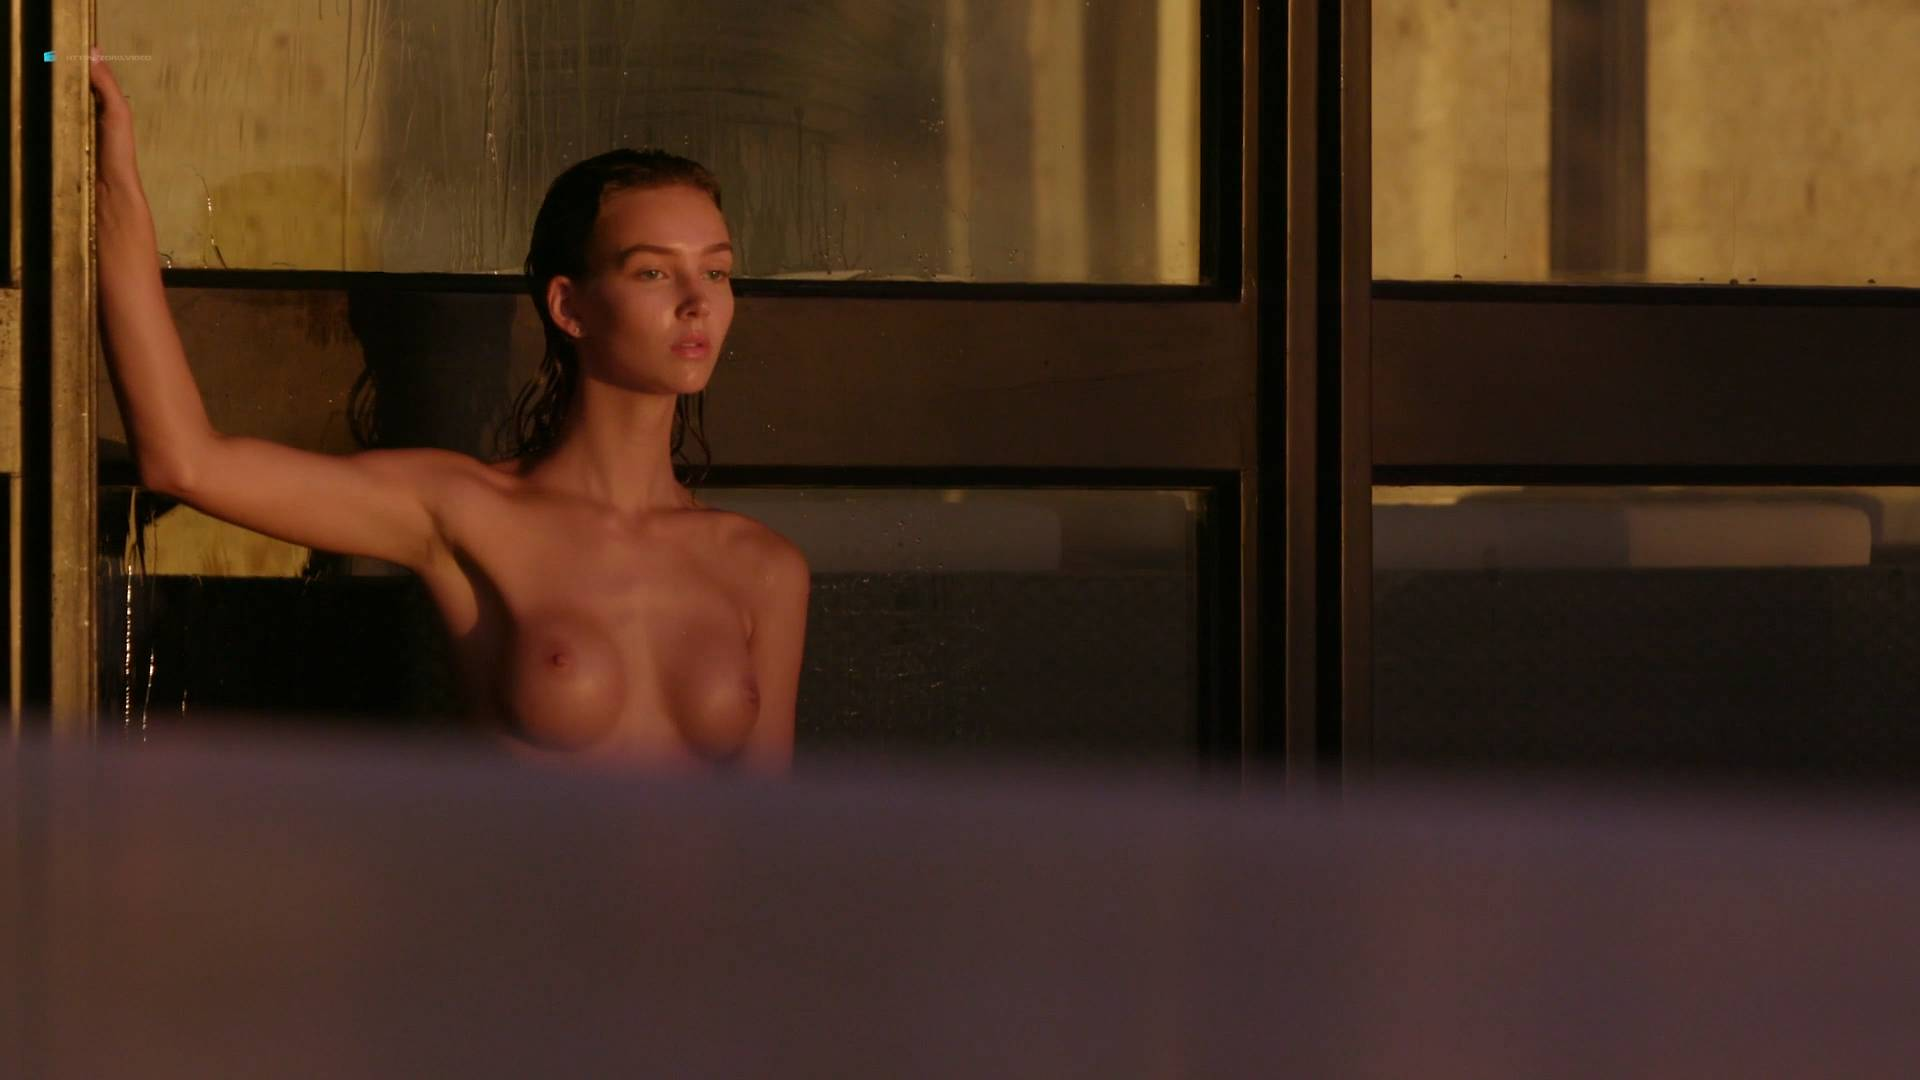 Rachel Cook nude Jessica Clements, Ebonee Davis and others all nude - Nude (2017) HD 1080p (5)